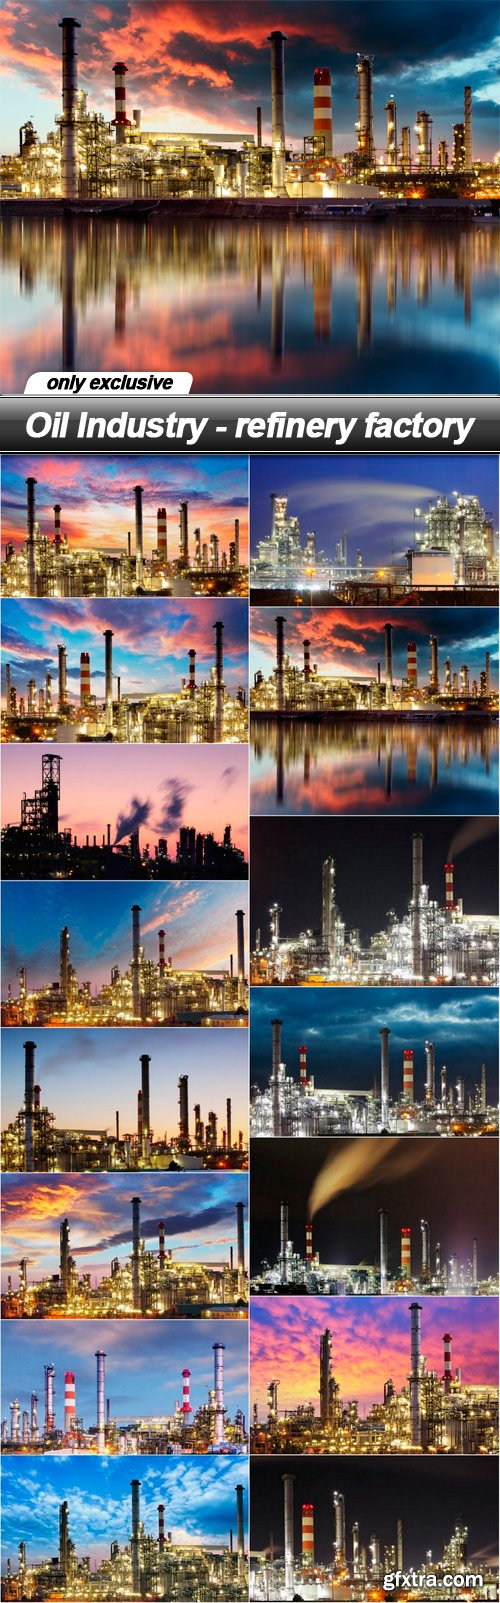 Oil Industry - refinery factory - 15 UHQ JPEG